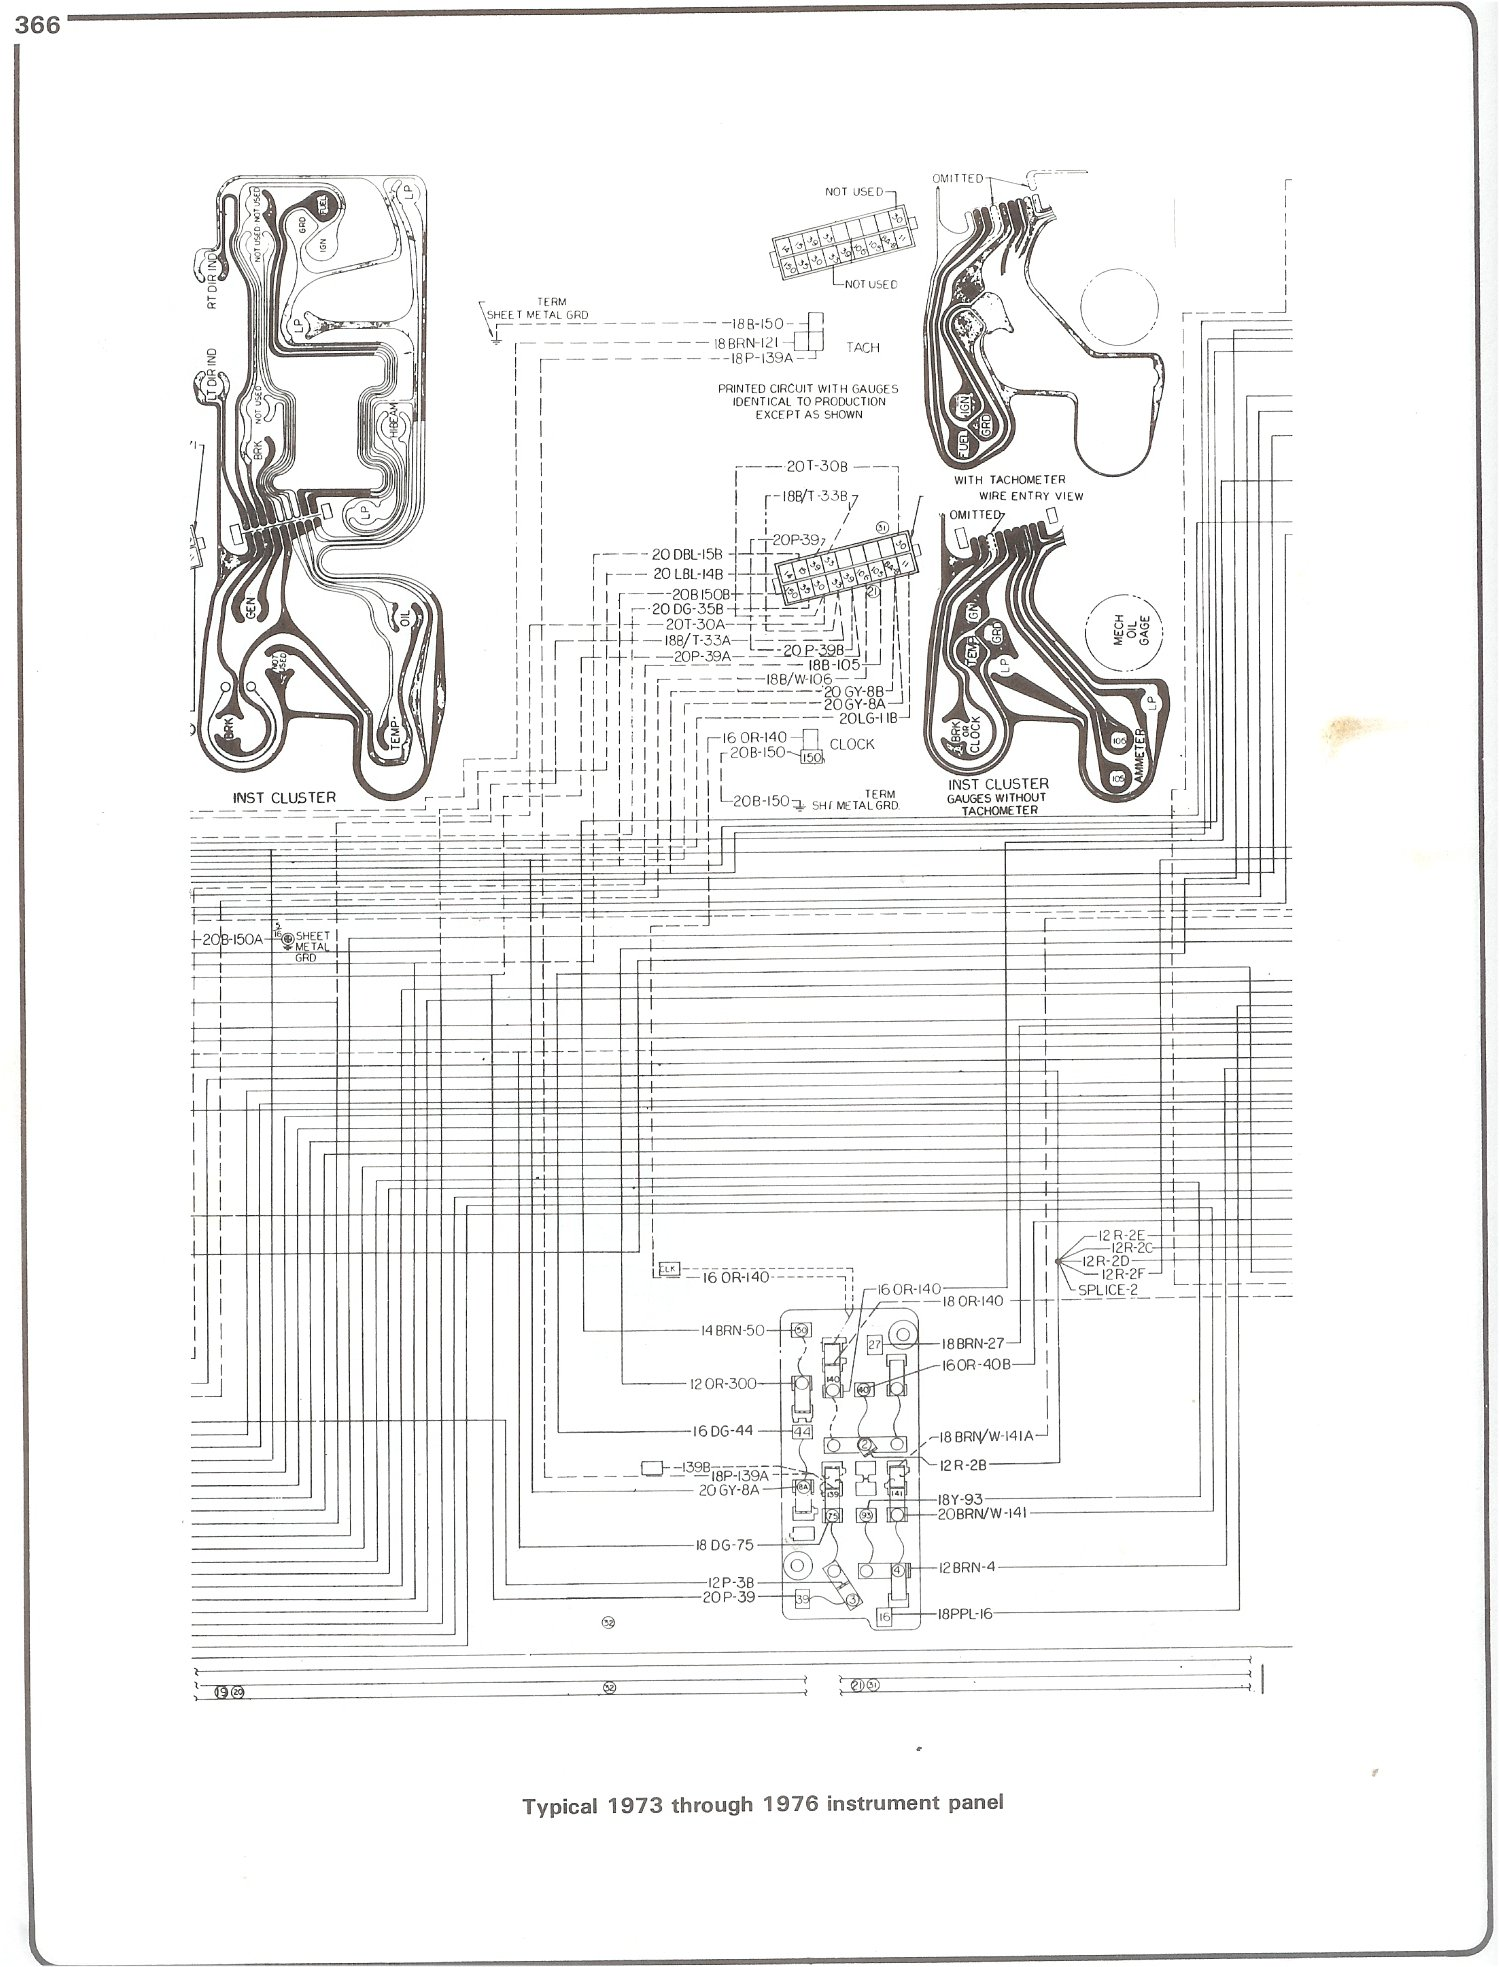 78 Gmc Jimmy Wiring Diagram Data 2000 Chevy Blazer Radio Complete 73 87 Diagrams V250